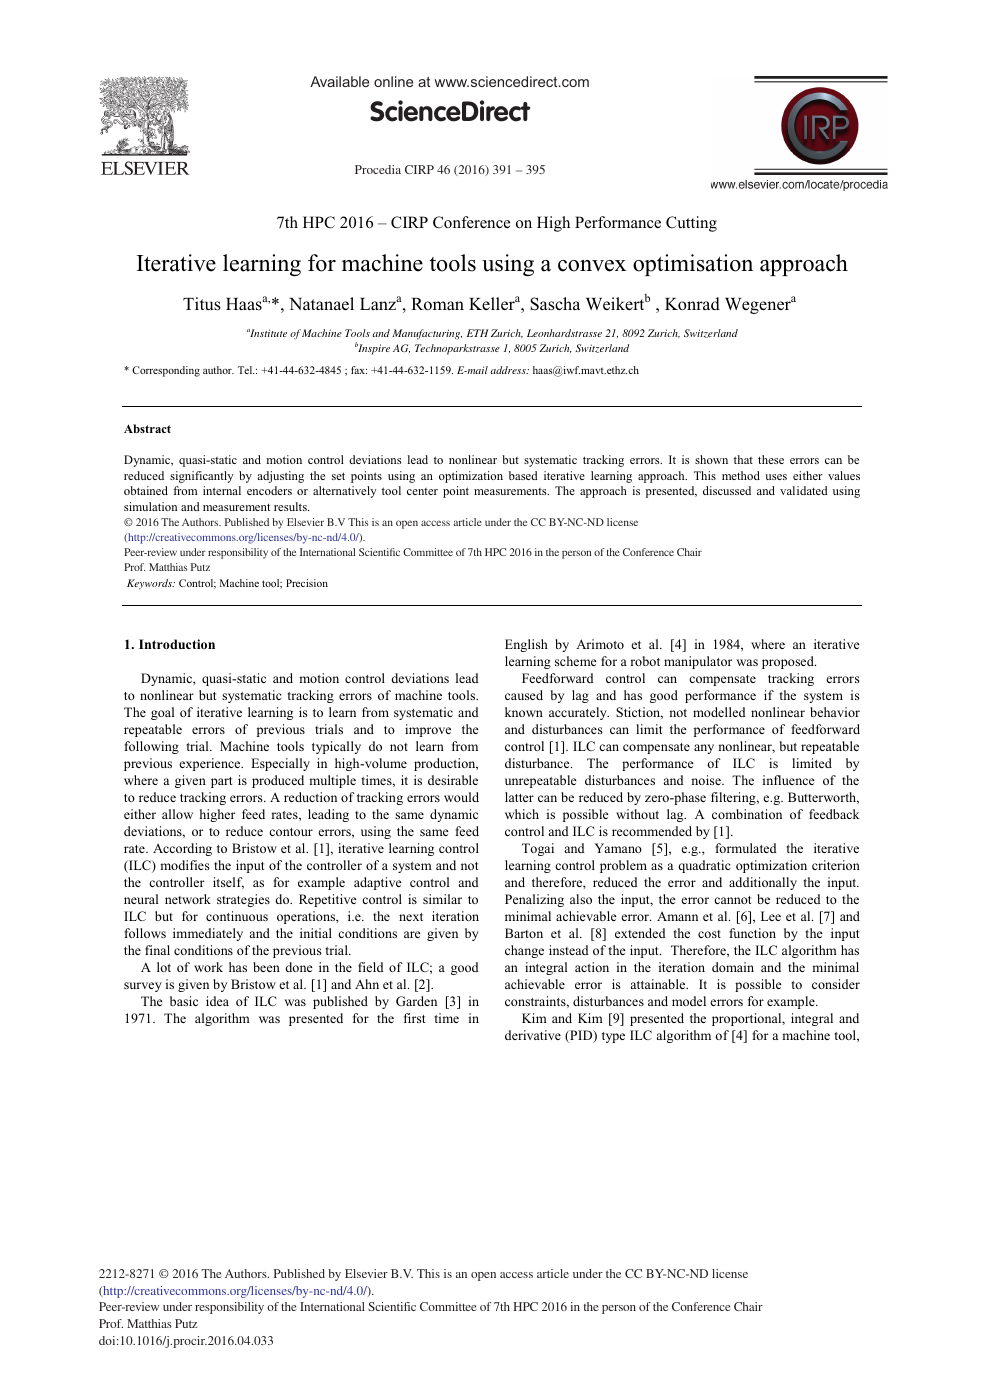 Iterative Learning for Machine Tools Using a Convex